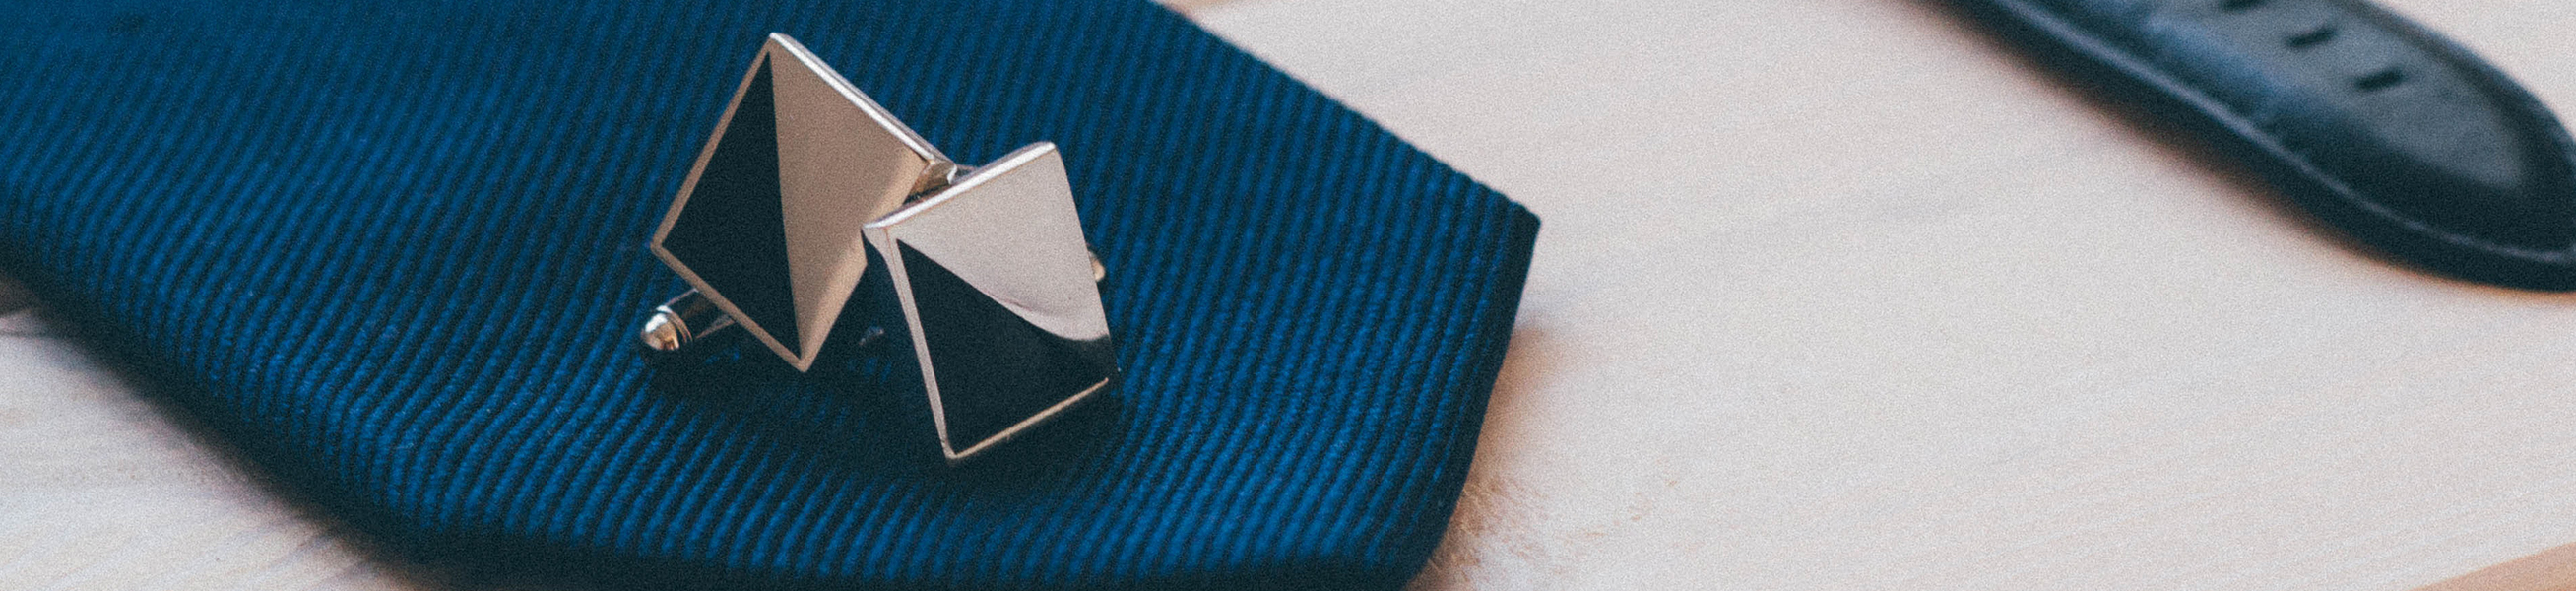 Men\'s cufflinks at Suitable ✔ Different colours and styles ✔ Brands like Suitable Private Label, Profuomo and Michaelis ✔ Silk and Silver cufflinks ✔ Shop online